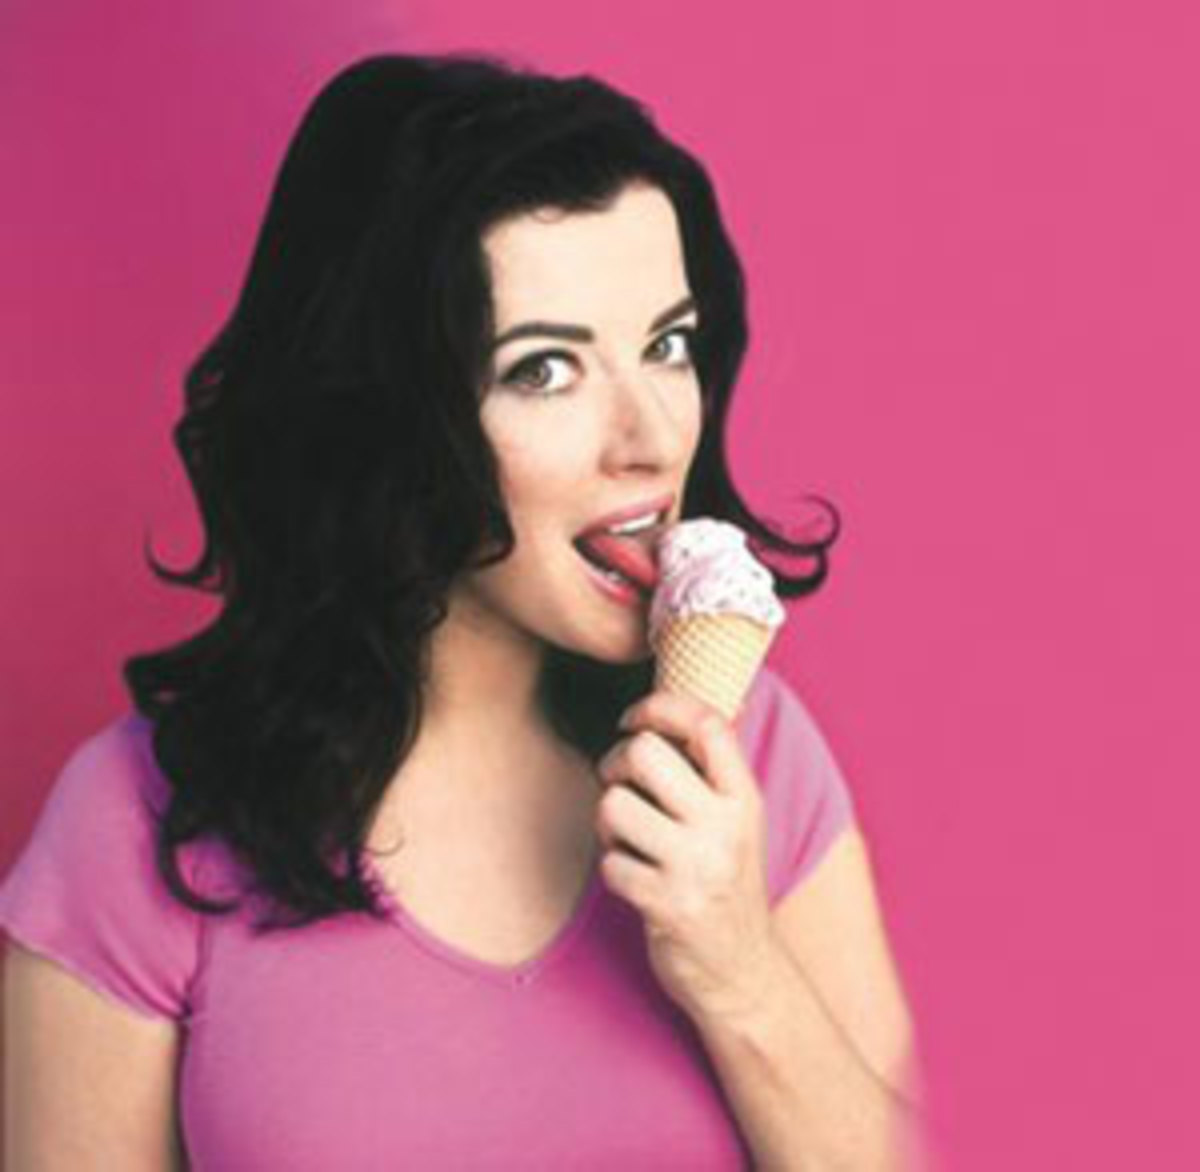 Nigella and an Ice Cream - Yummy!